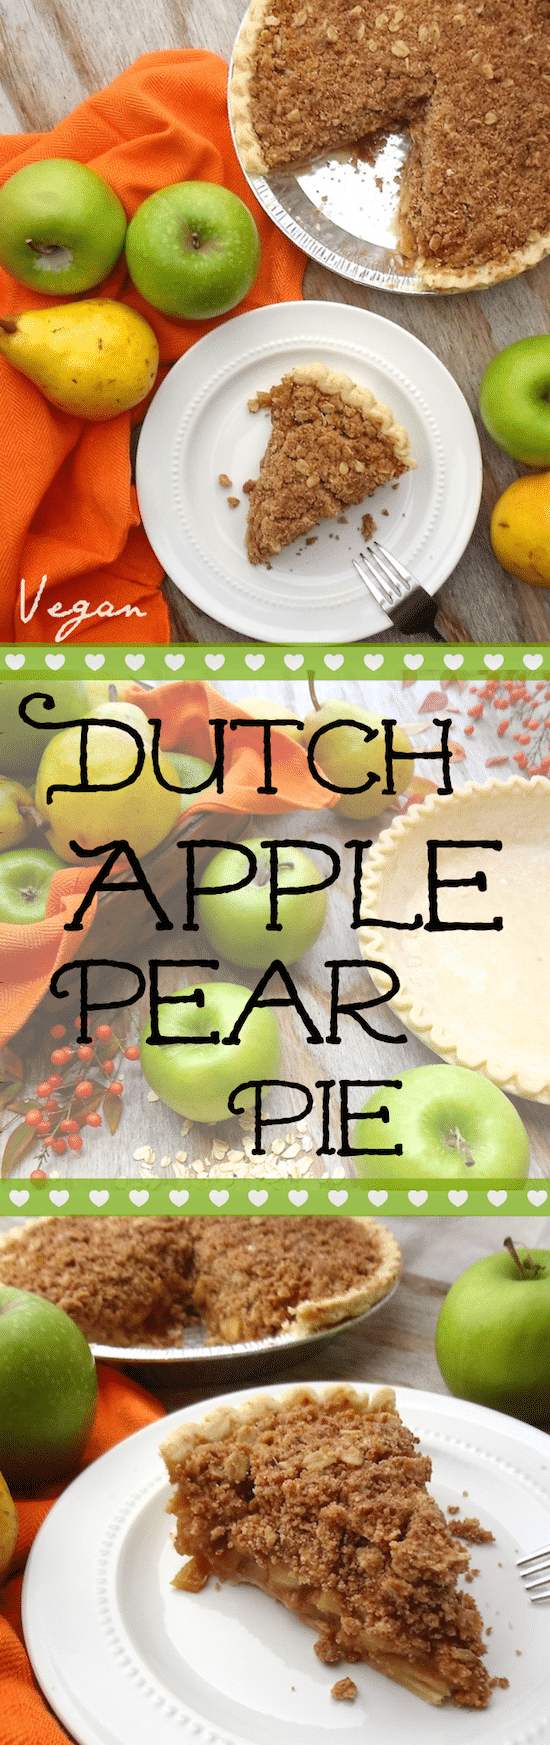 Vegan Dutch Apple-Pear Pie made with 9 simple ingredients. – I could eat the whole pie myself, it's so good. The sweet pears add another element to an otherwise ordinary apple pie.